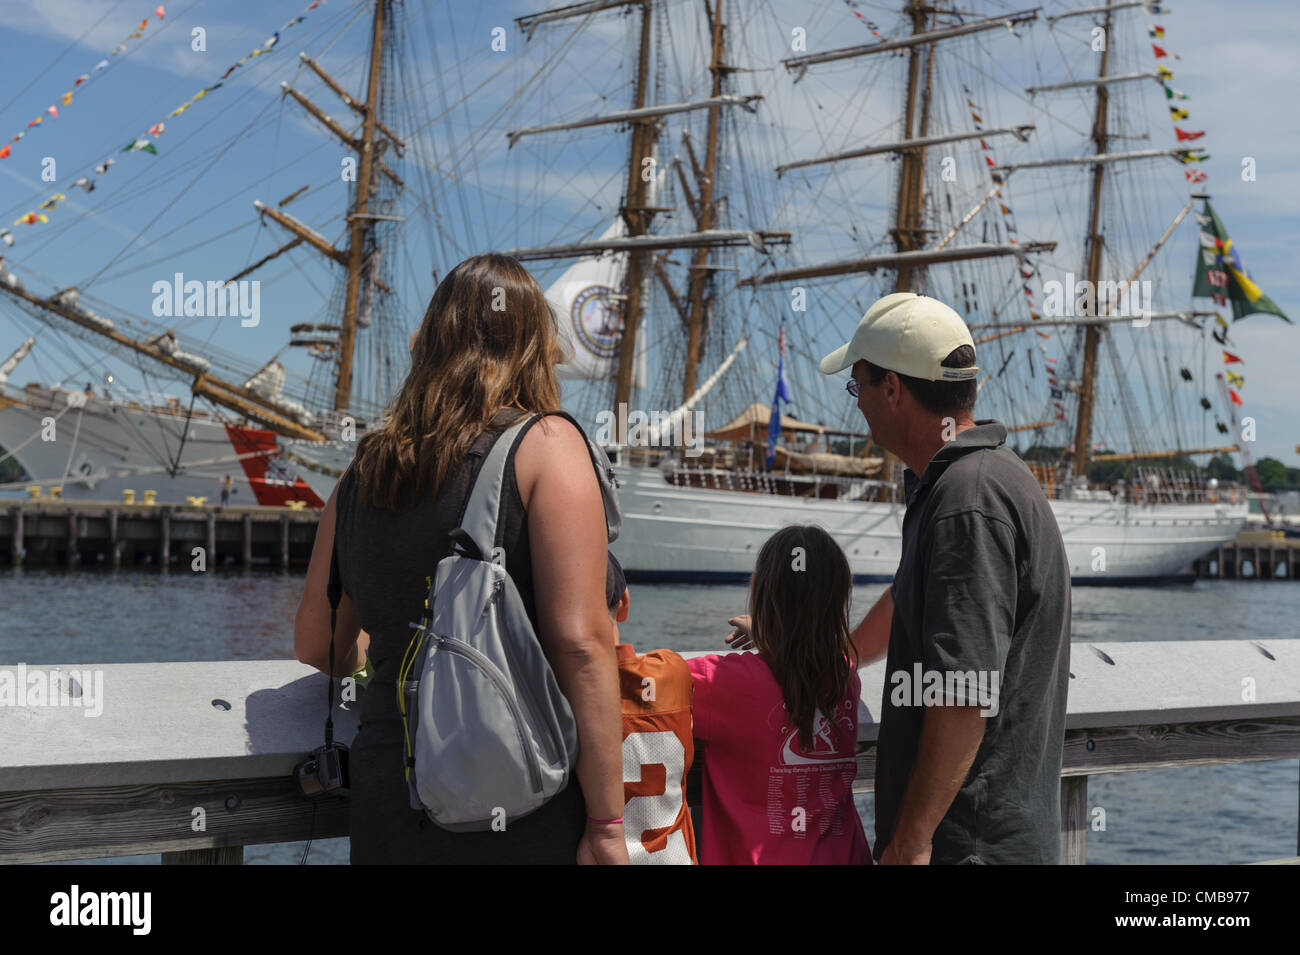 A family vacation in Connecticut. New London, CT, USA - July 9, 2012: With the tall ships due to sail from Fort - Stock Image